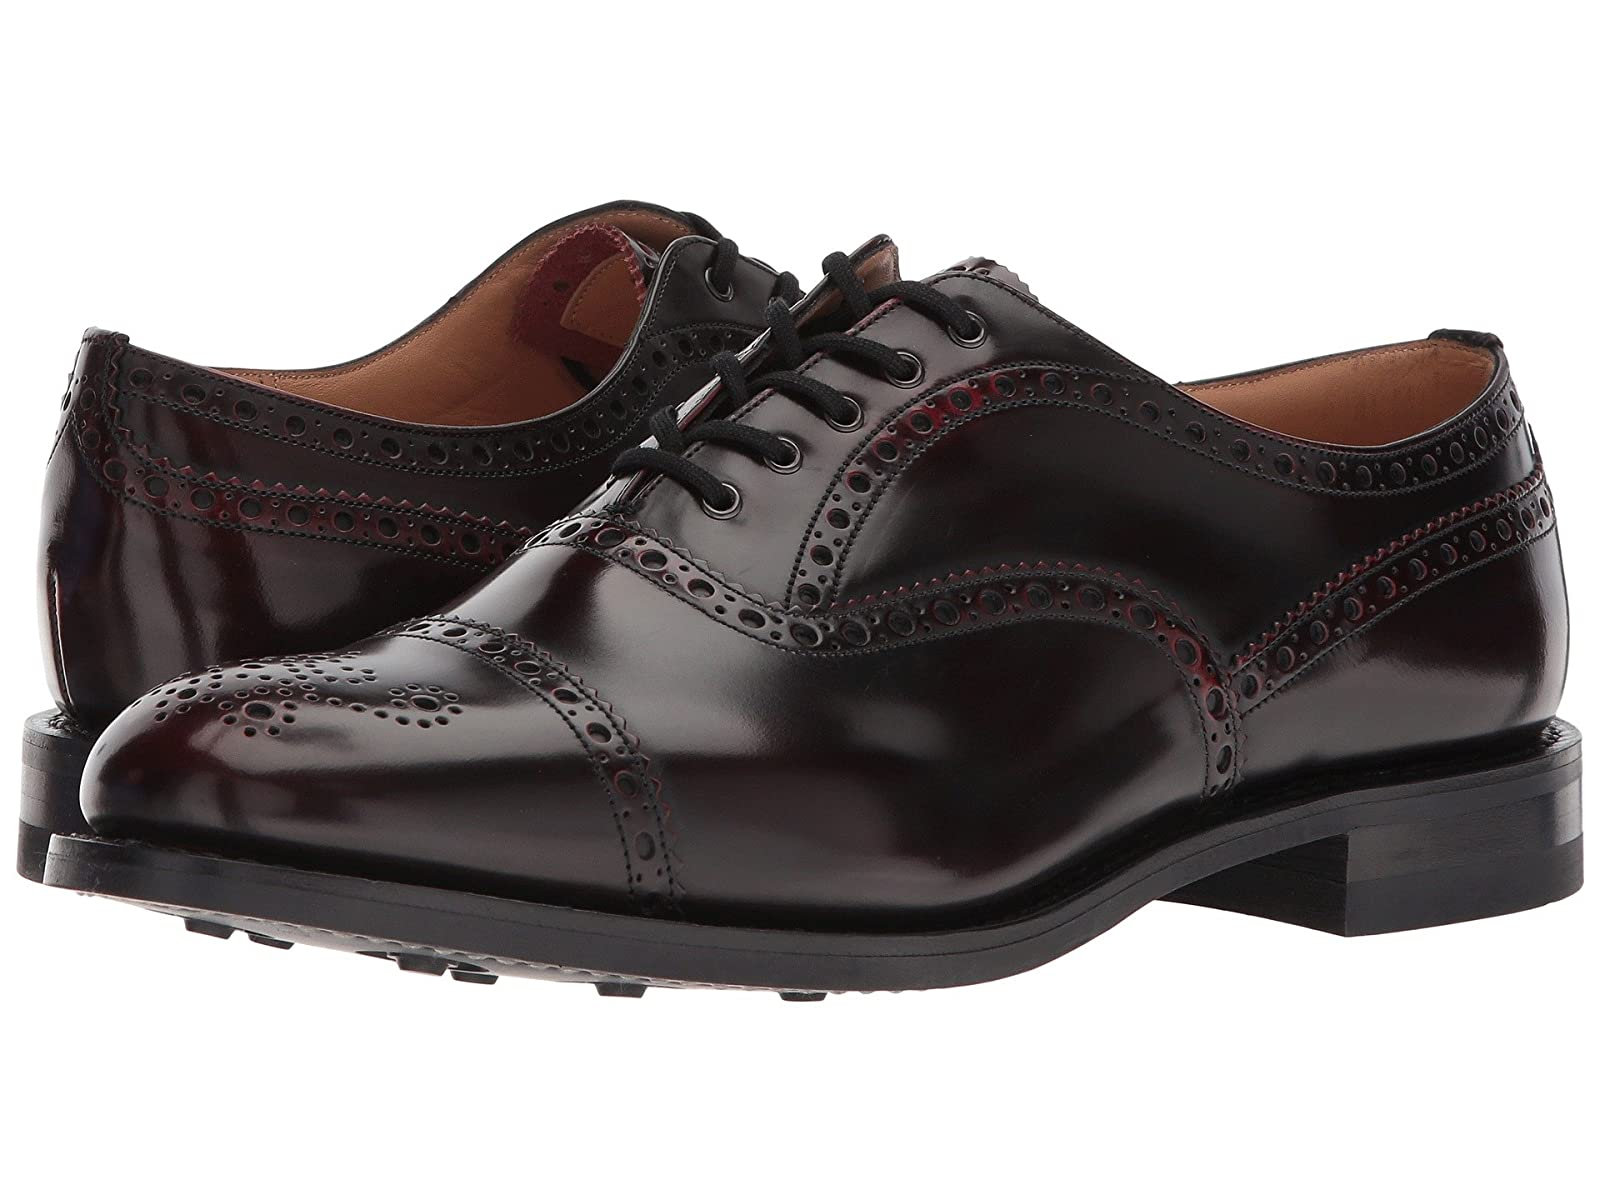 Church's Scalford OxfordCheap and distinctive eye-catching shoes